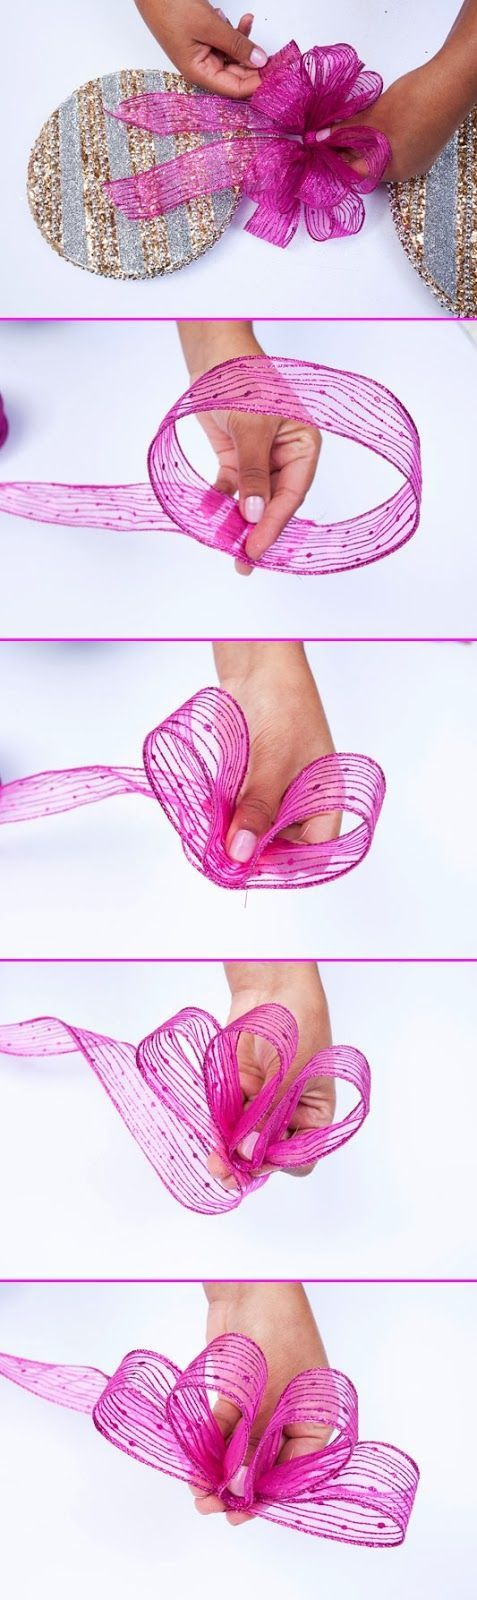 Diy Projects: How to Tie a Bow